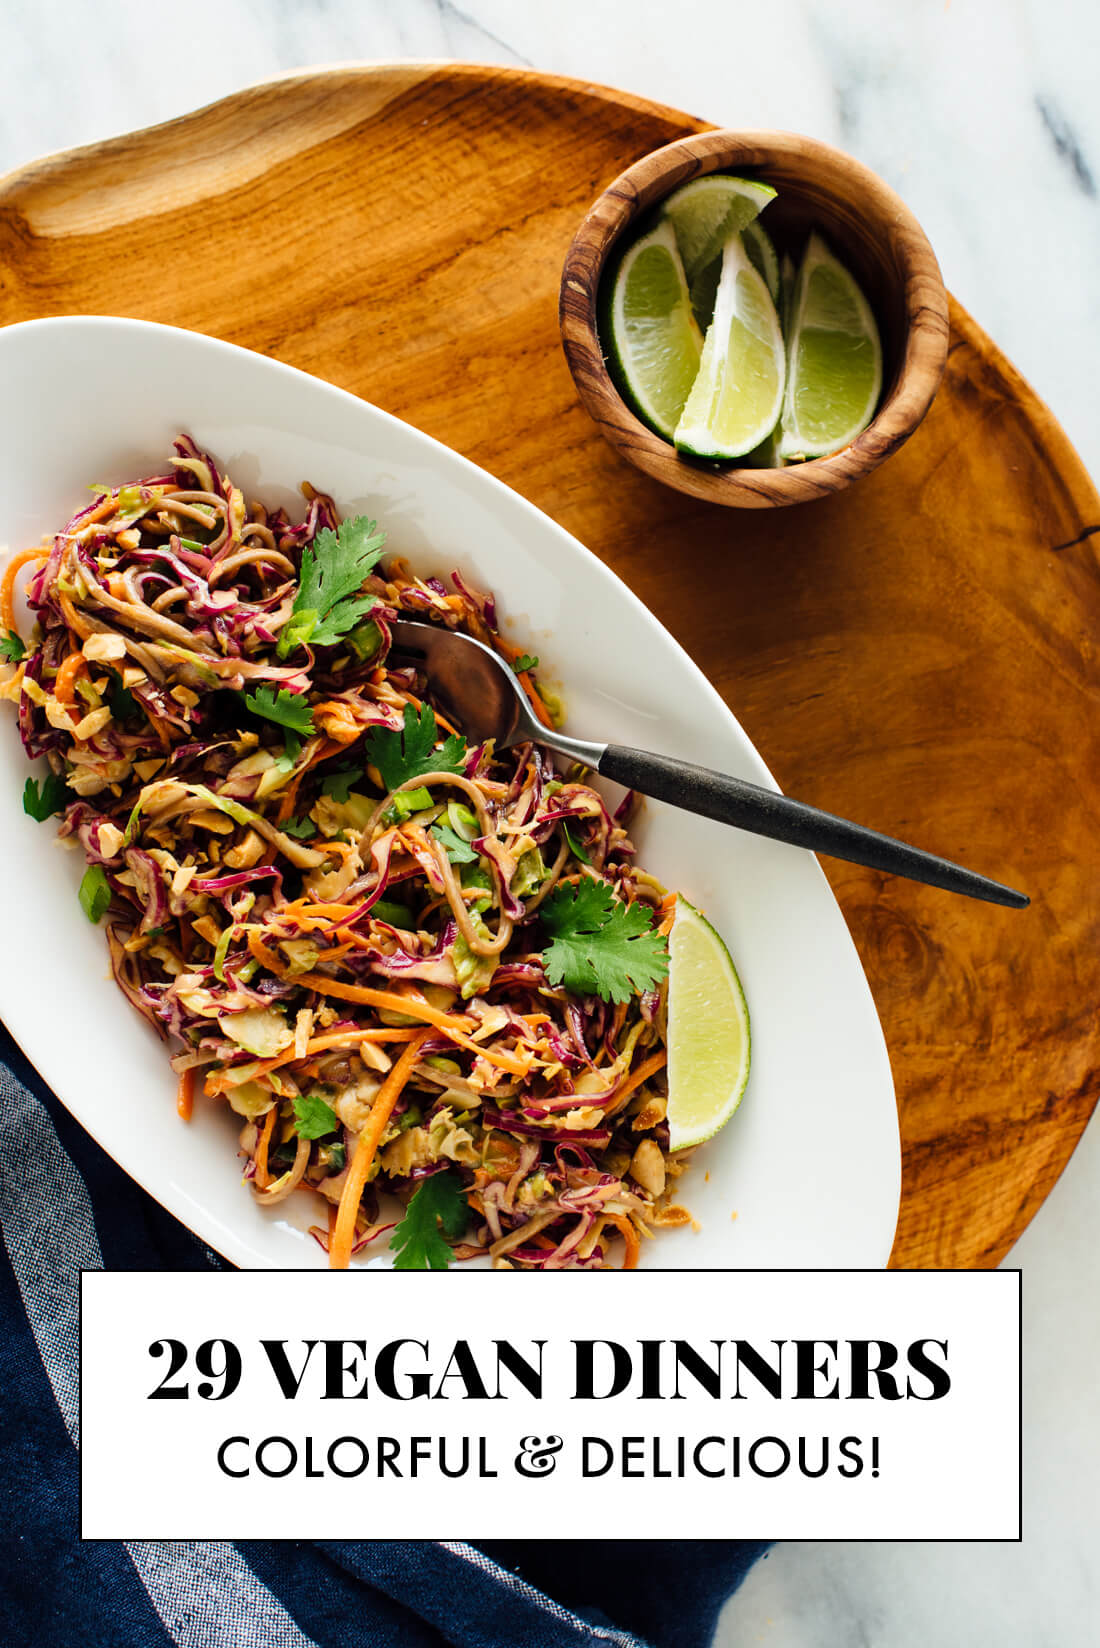 29 delicious vegan dinner recipes - cookie and kate